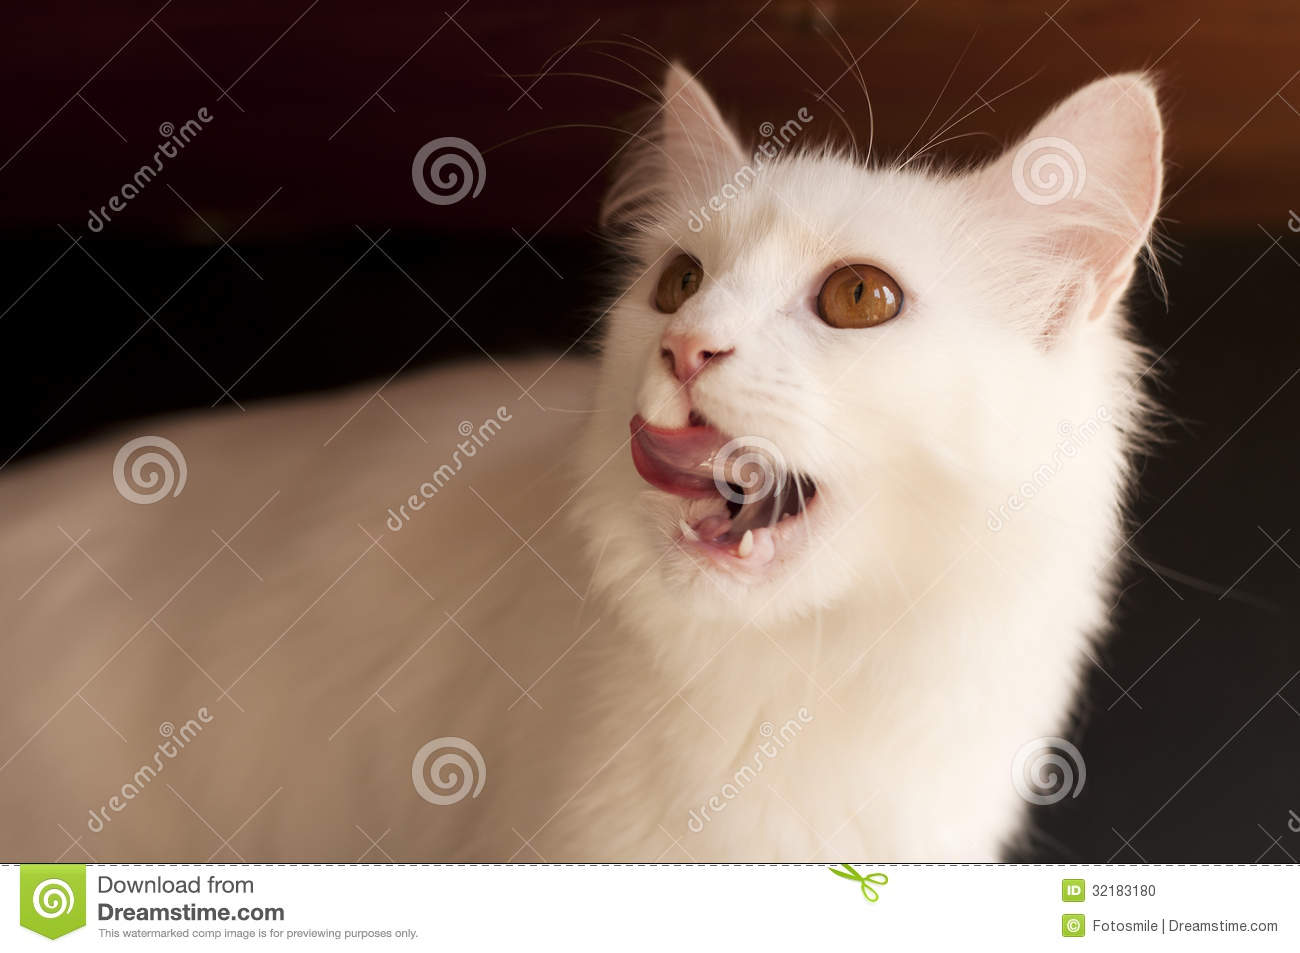 Cat Licking Mouth Naked Pictures Of Women